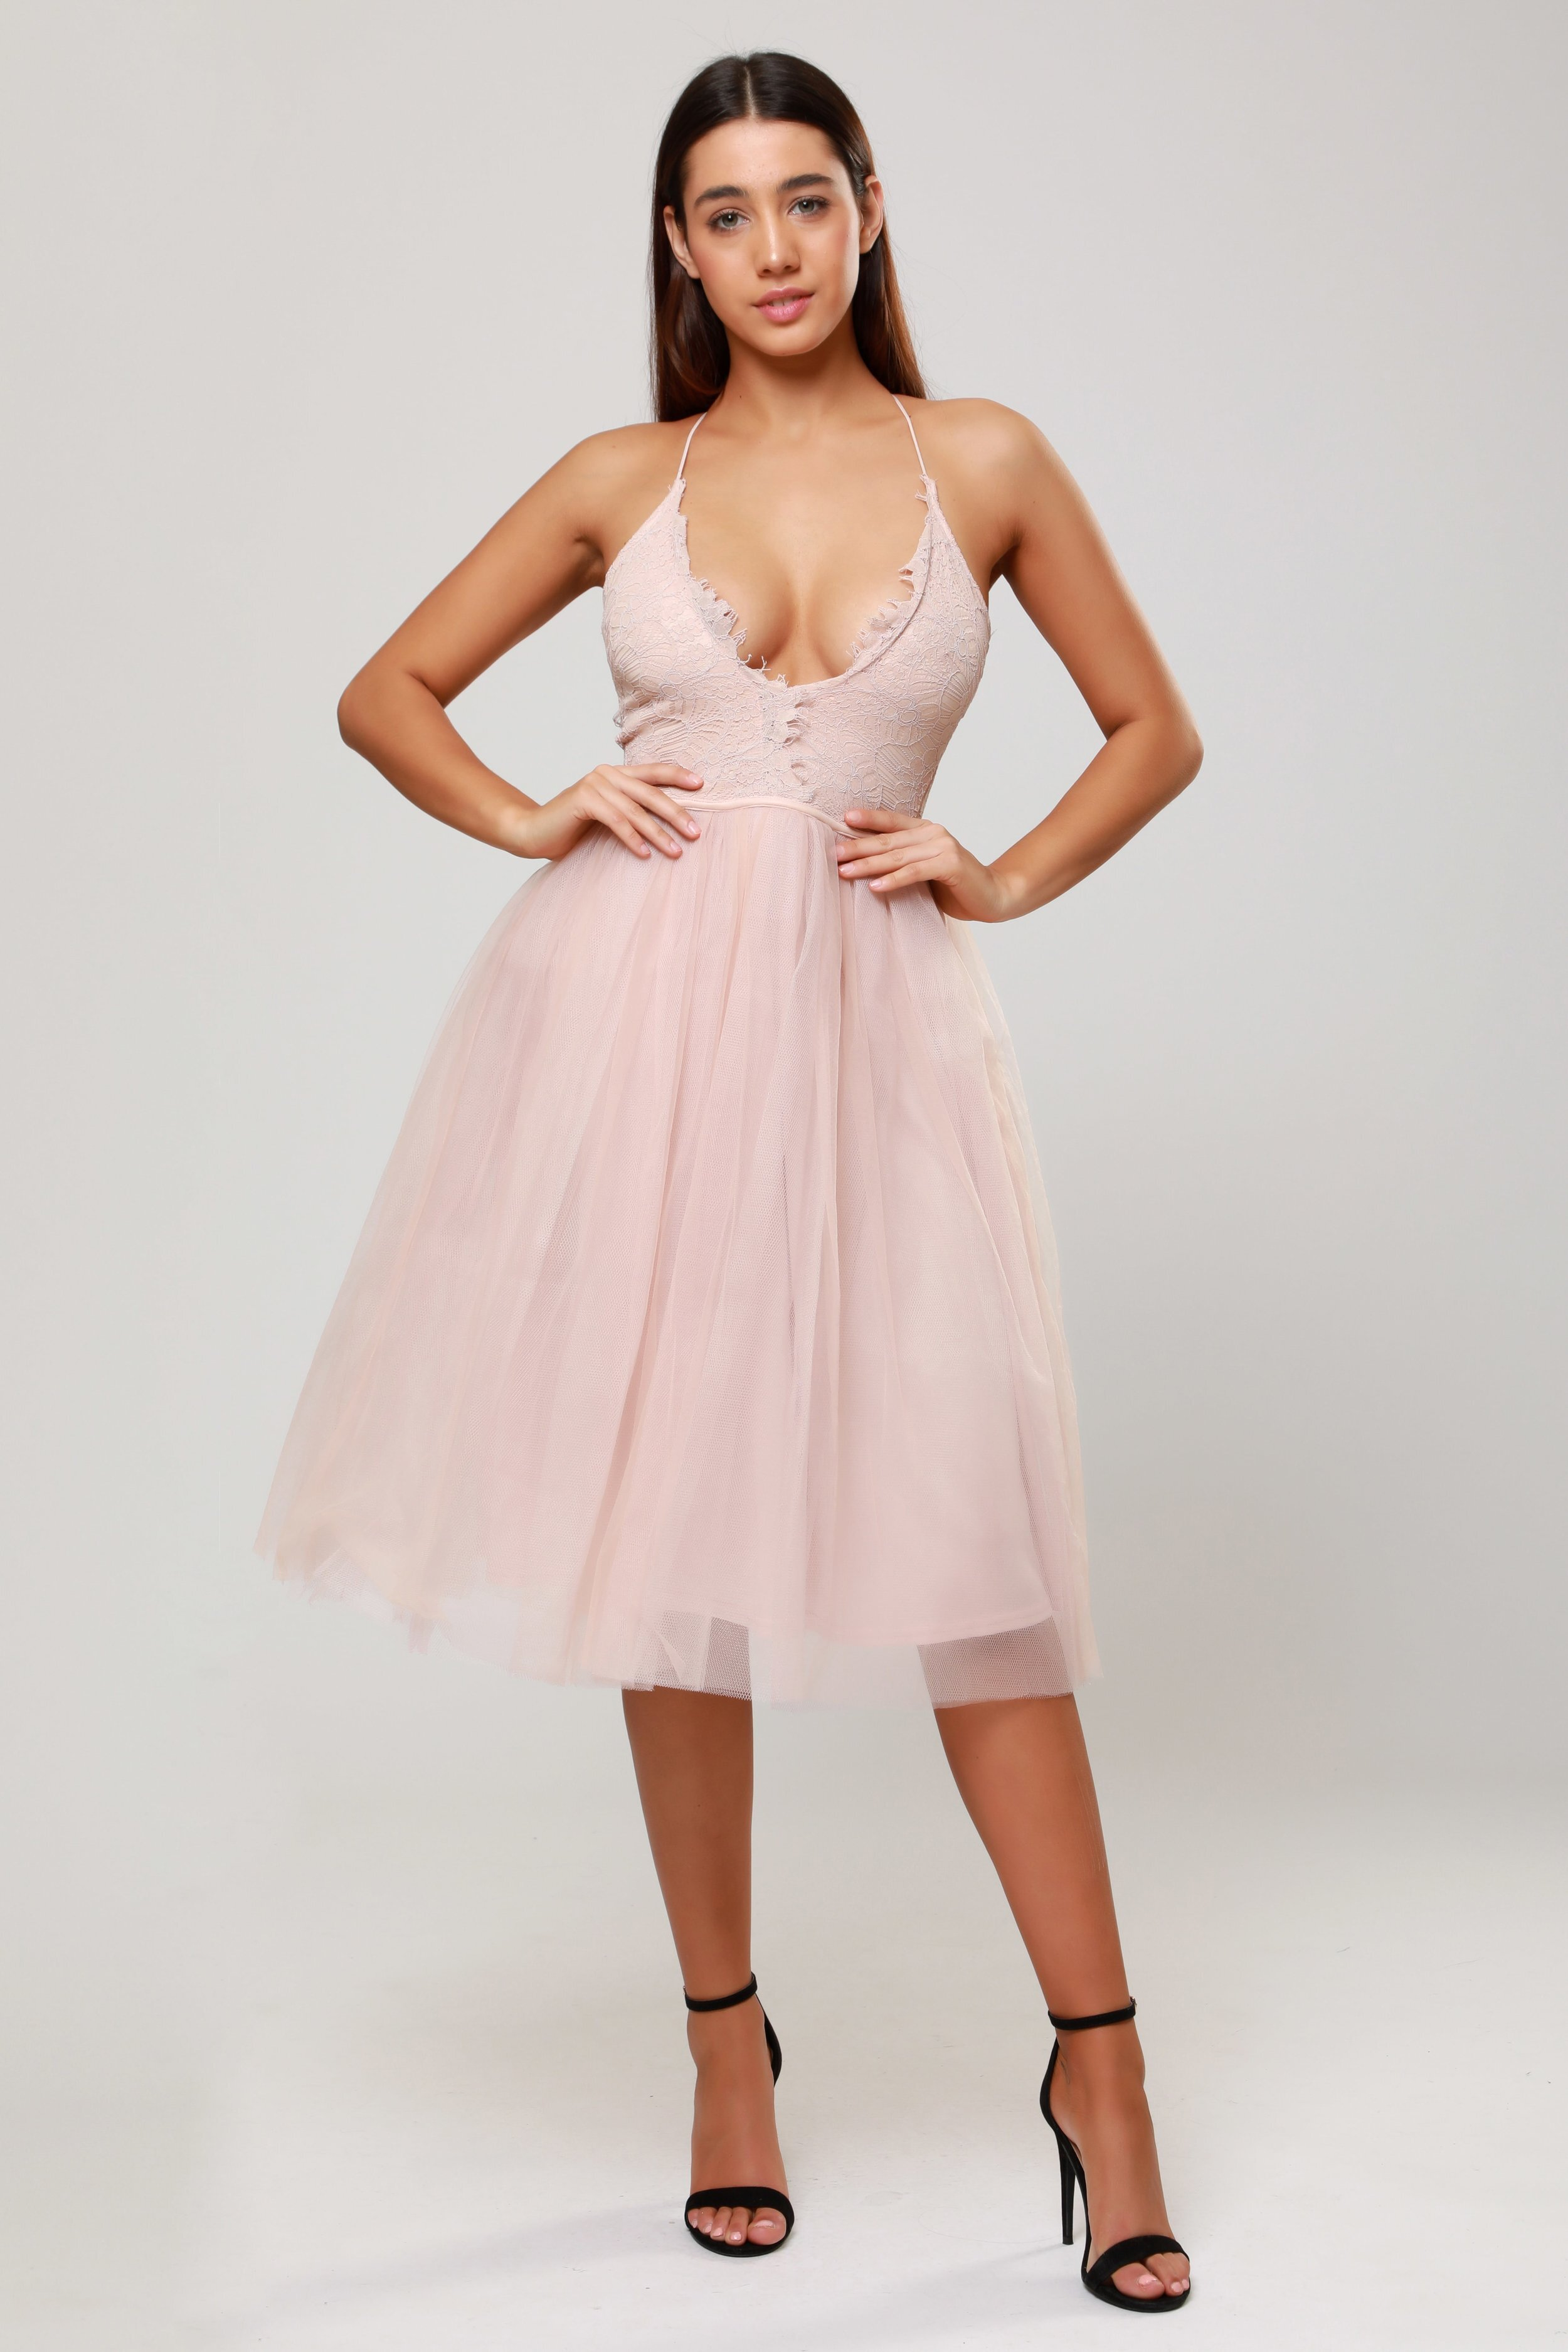 Cami Strap  Tulle Dress   £75.00